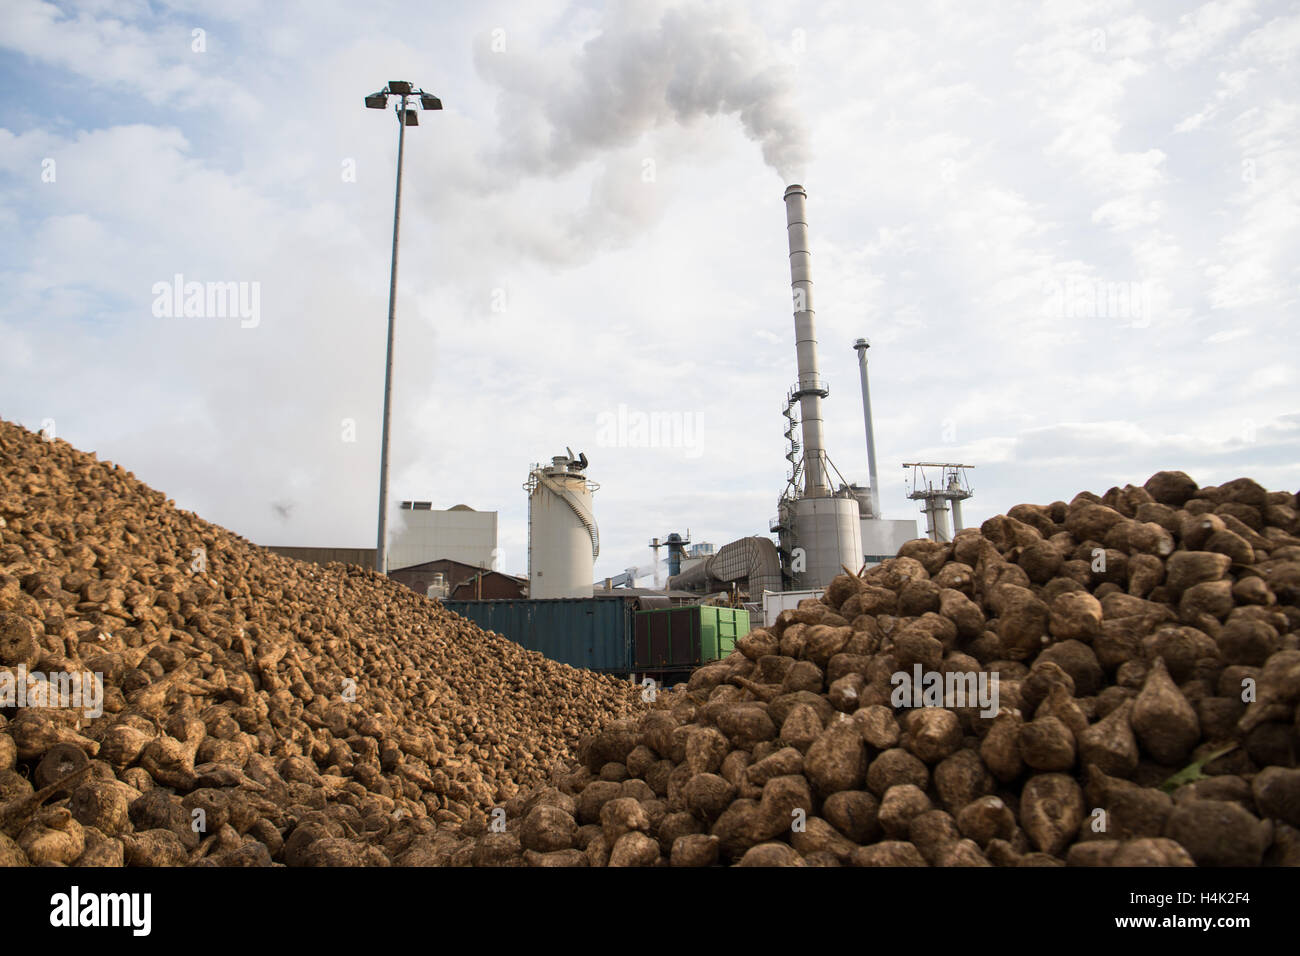 Euskirchen, Germany. 17th Oct, 2016. Sugar beets are stored at a storage location in front of the sugar factory - Stock Image